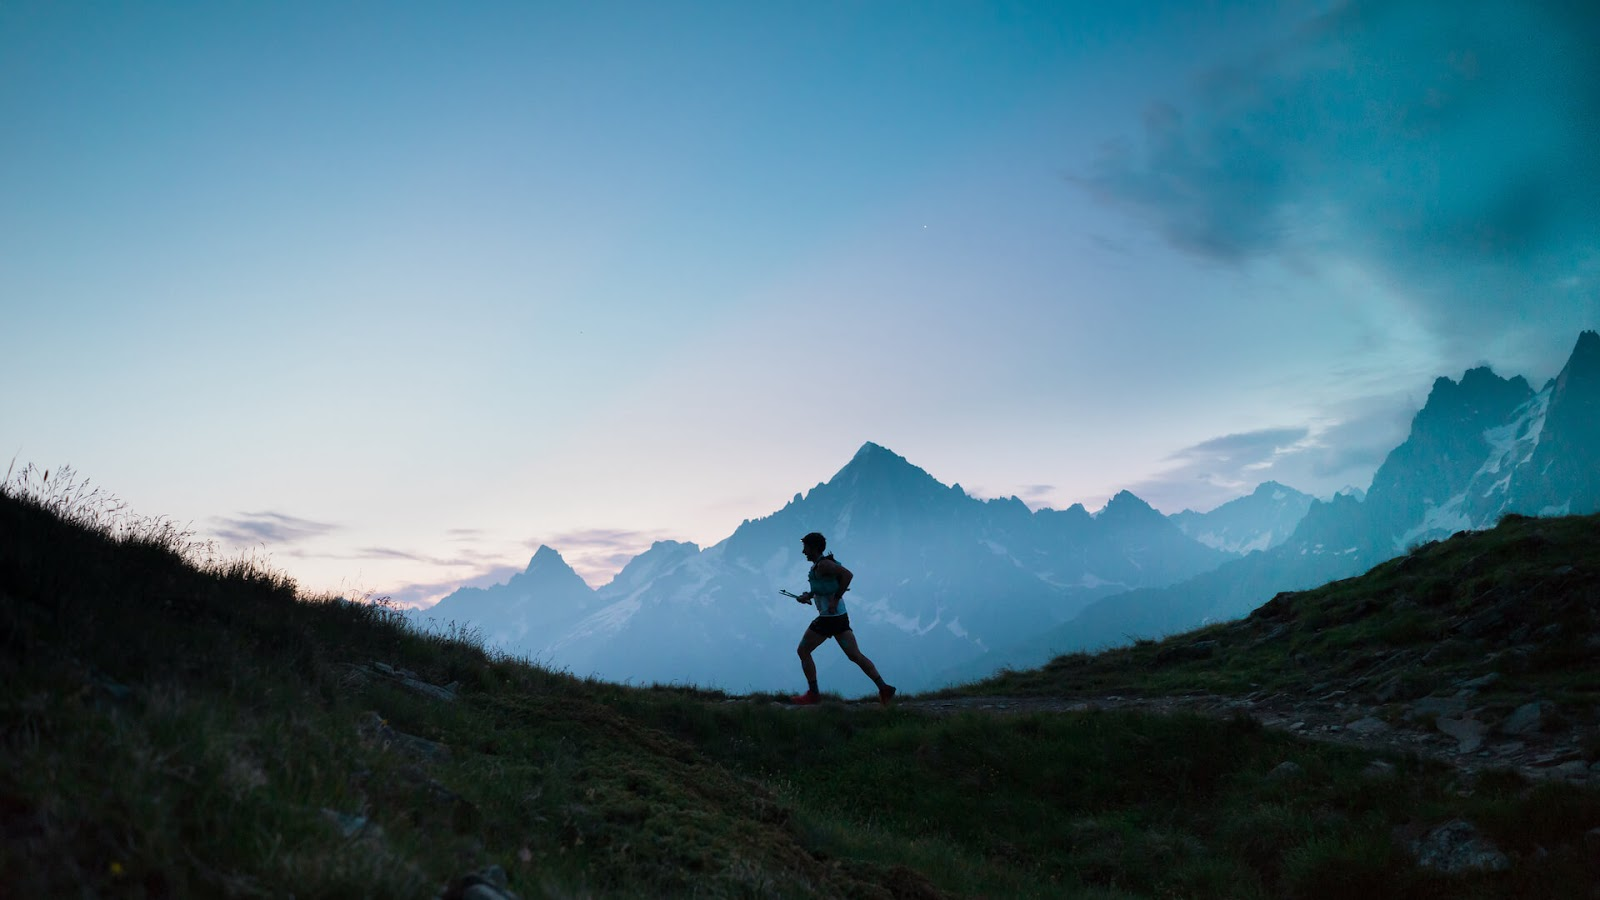 Man jogging on a trail with a mountain in the background